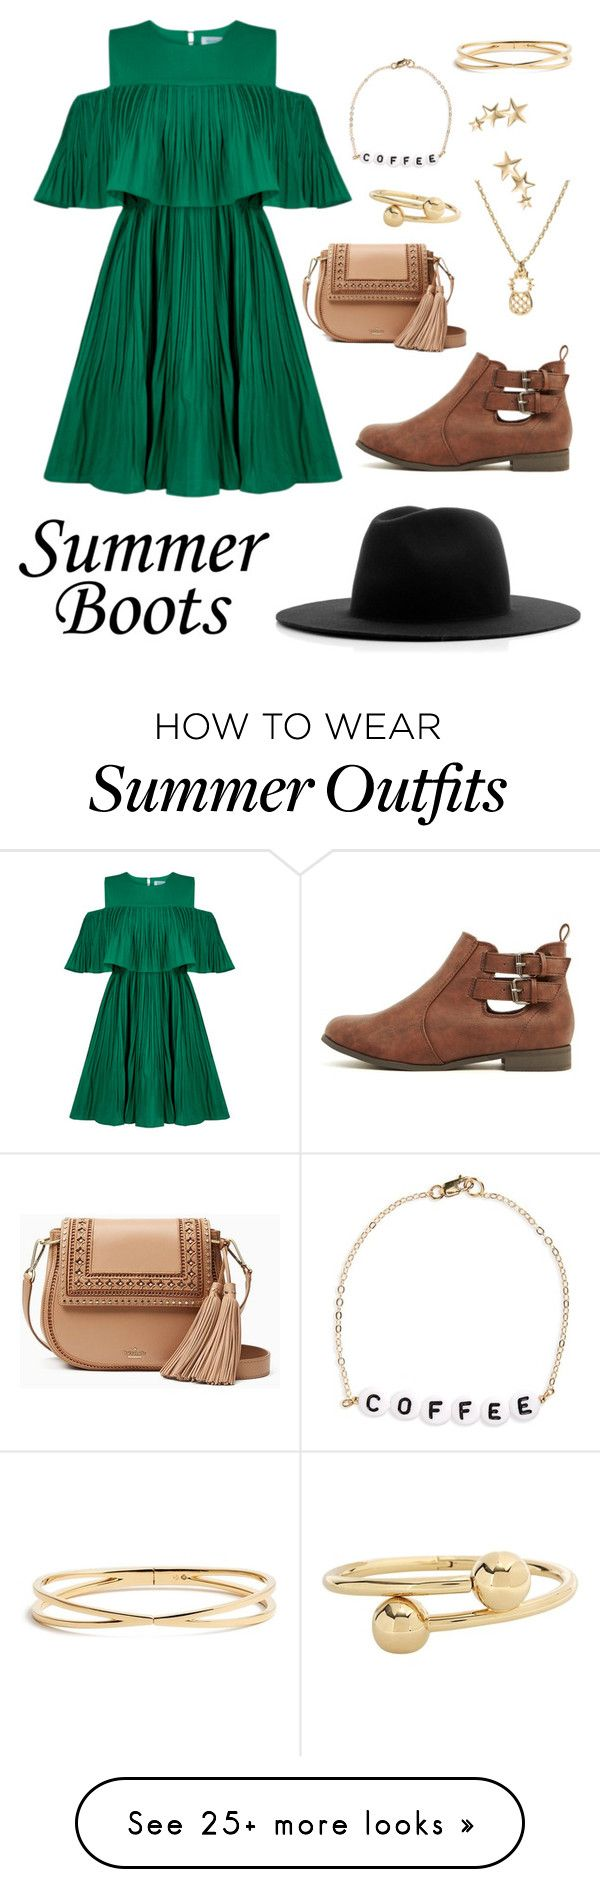 """""""Slightly Earth-toned Outfit"""" by gwabby on Polyvore featuring Jovonna, Kate Spade, Études, J.W. Anderson, Kenneth Jay Lane, Ryan Porter and Nadri"""